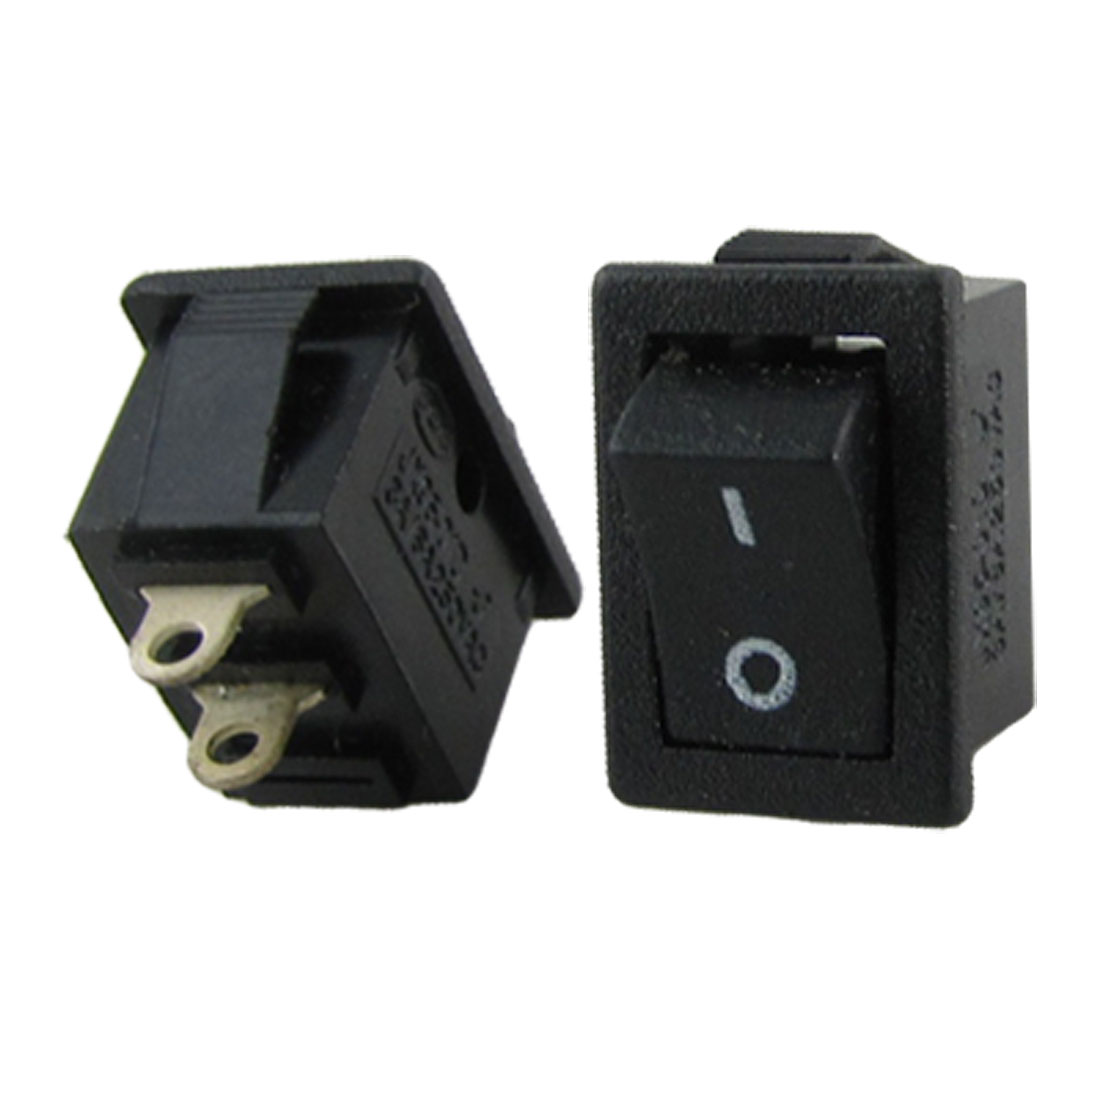 2 Pcs Black AC 250V 3A 2 Pin SPST On/Off Snap in Boat Rocker Switch 12.7x8.9mm